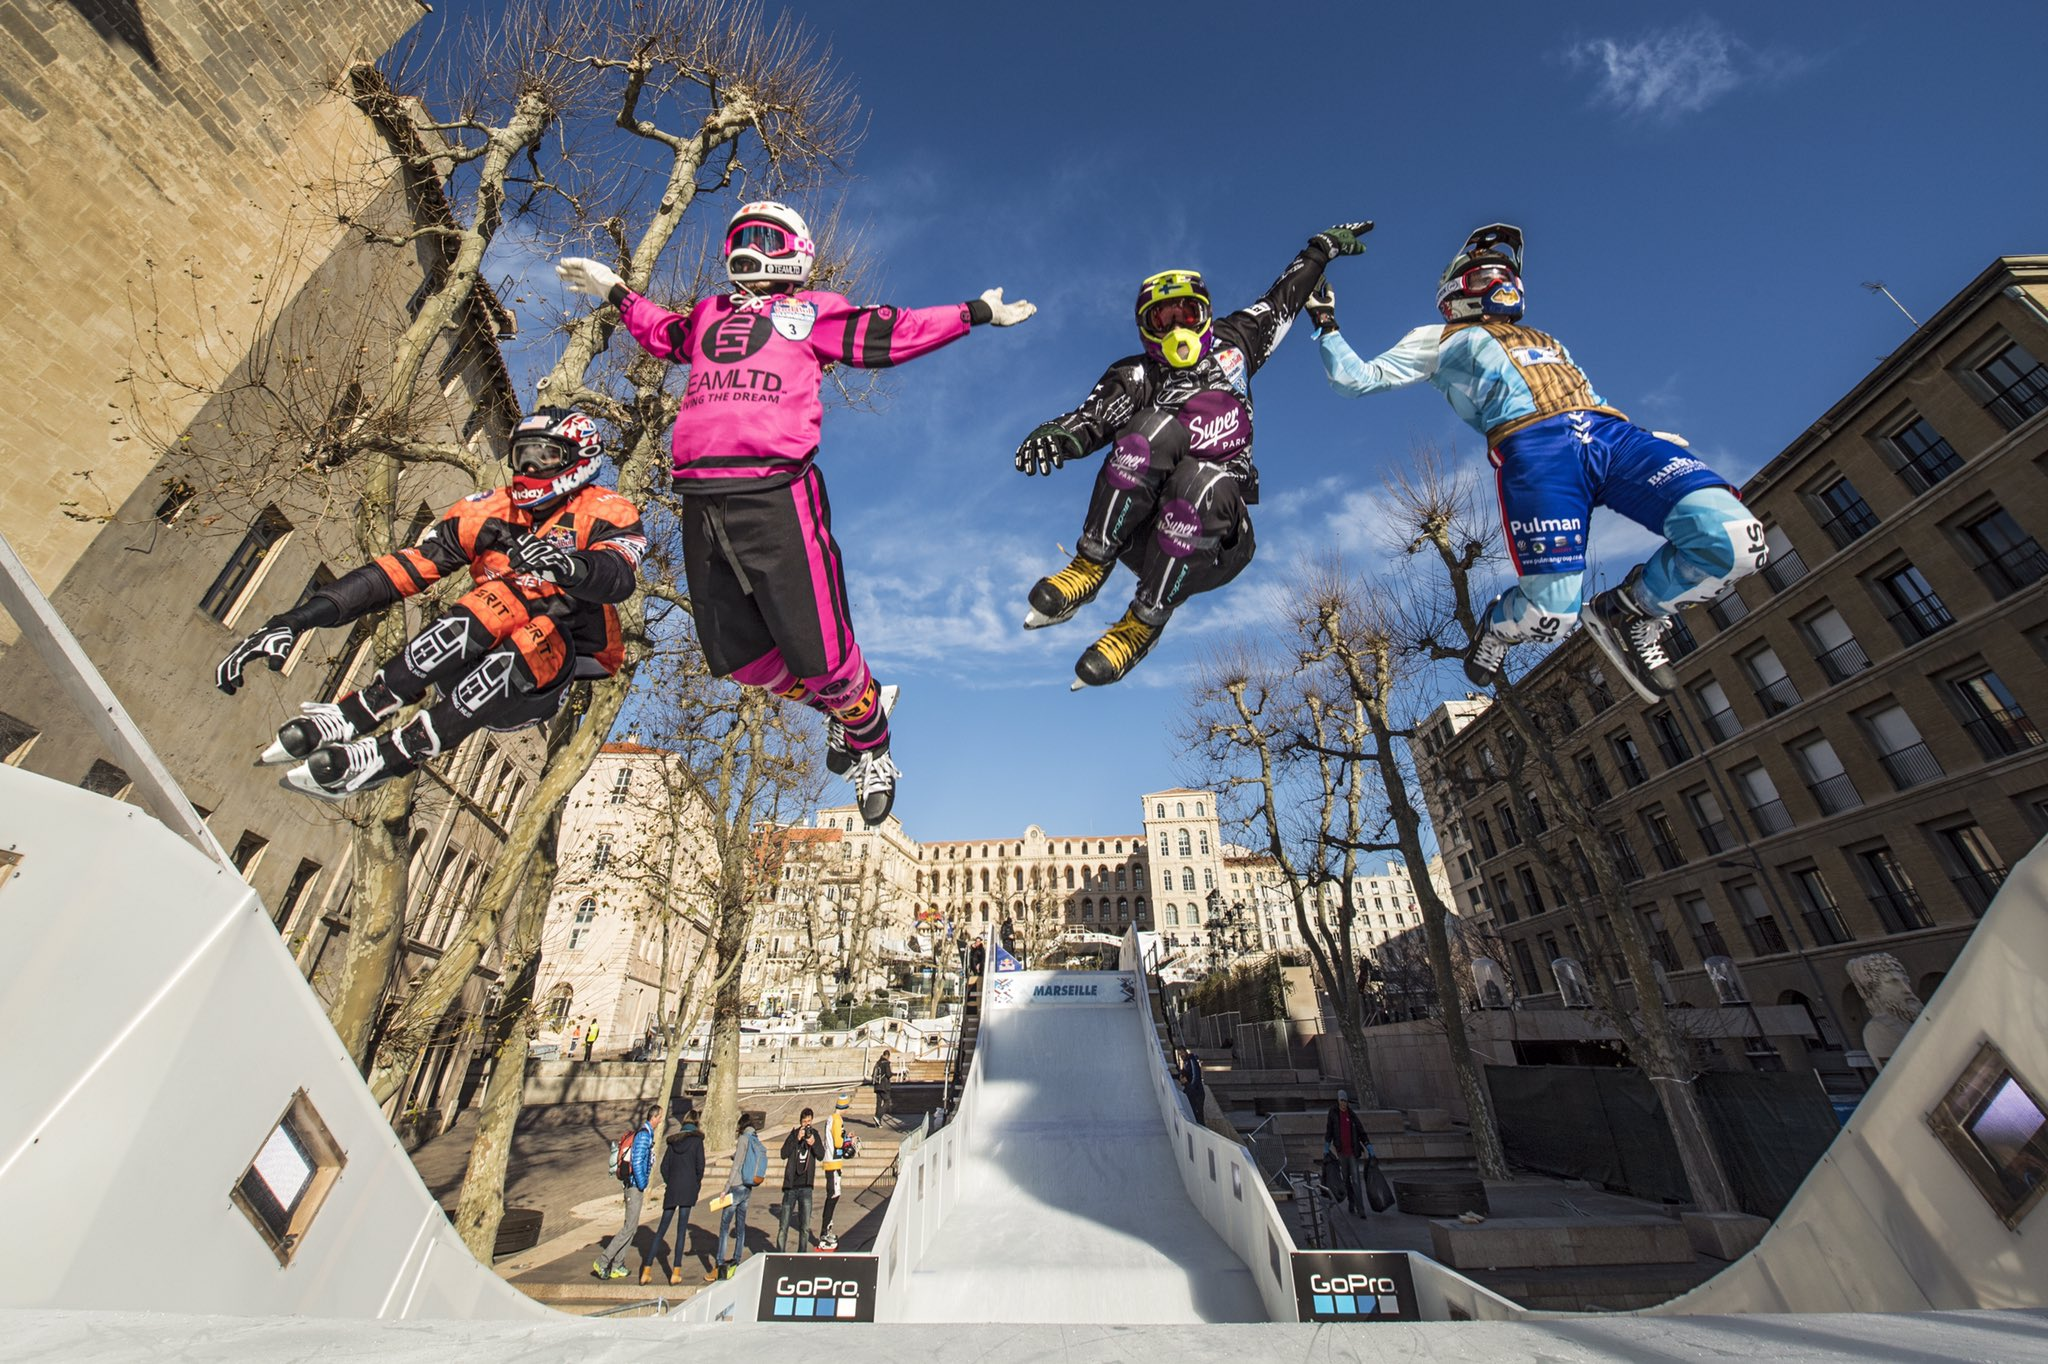 Cameron Naasz of the United States, Maxwell Dunne of the United States, Scott Croxall of Canada and Marco Dallago of Austria compete during the finals at the first stage of the ATSX Ice Cross Downhill World Championship at the Red Bull Crashed Ice in Marseille, France on January 14, 2017.